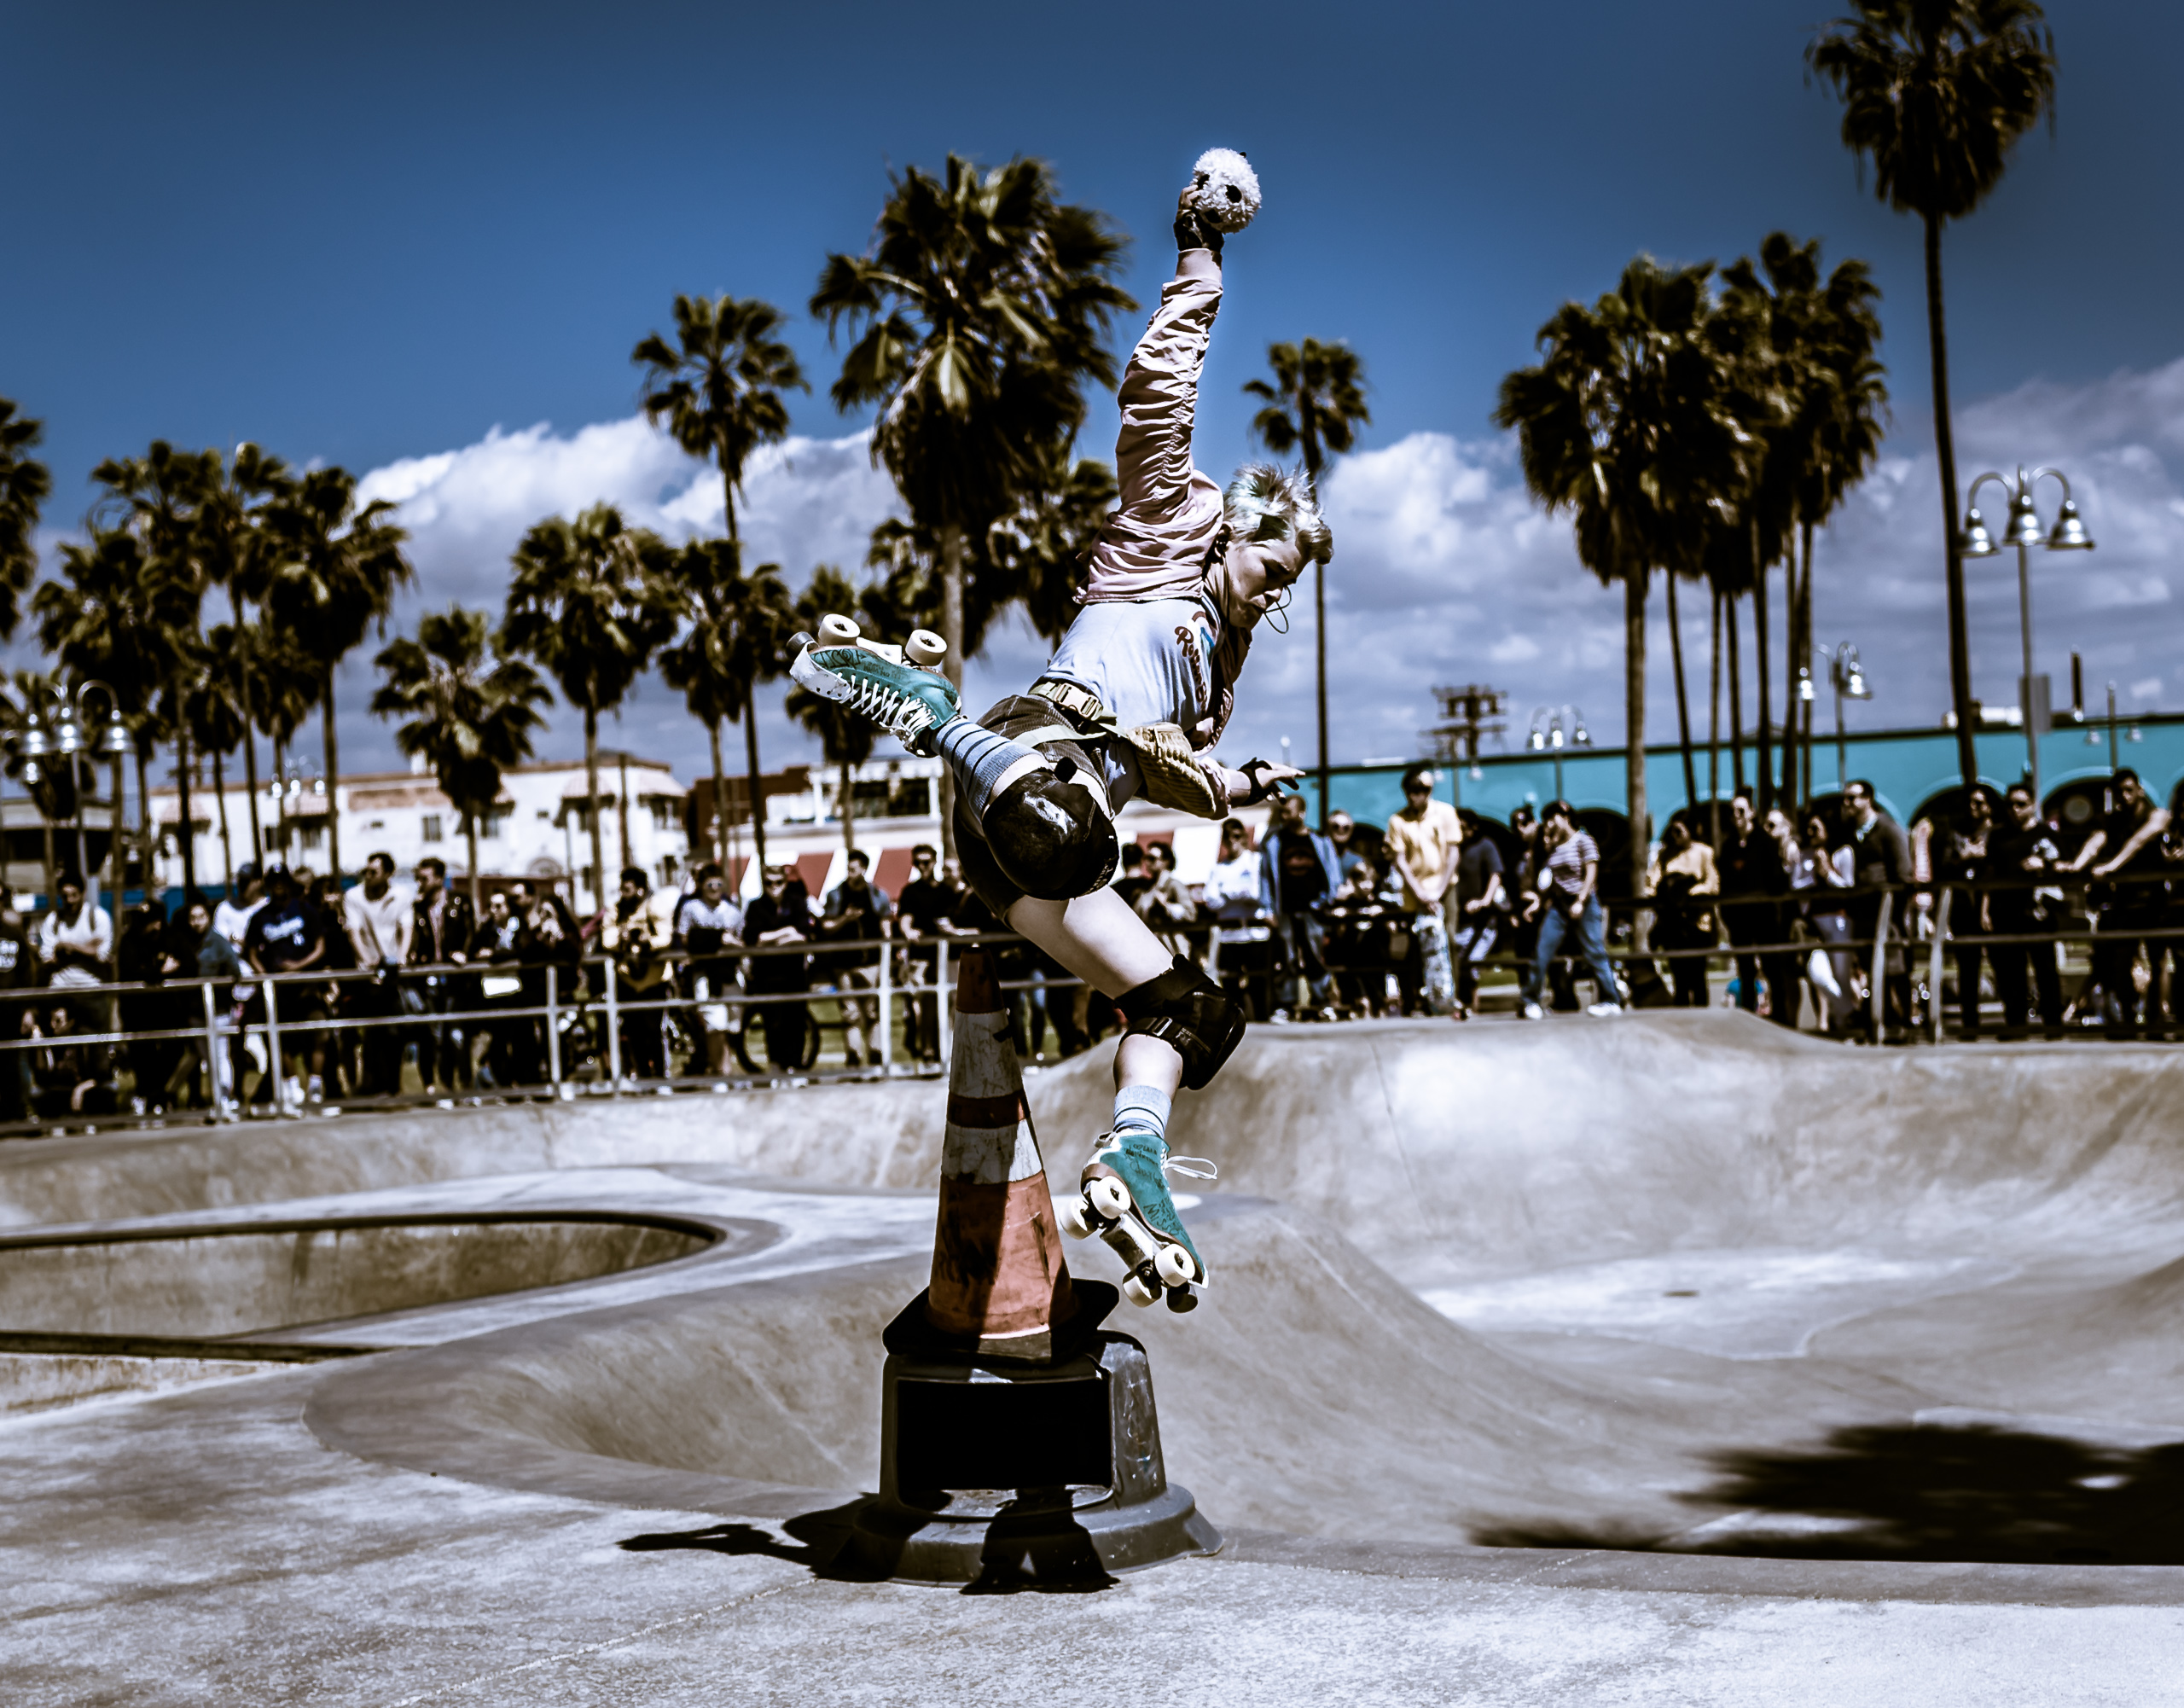 a woman in a pink jacket, short pants, knee pads, and green quad roller skates jumps over a tall cone at the Venice Beach Skate Park in Venice Beach California